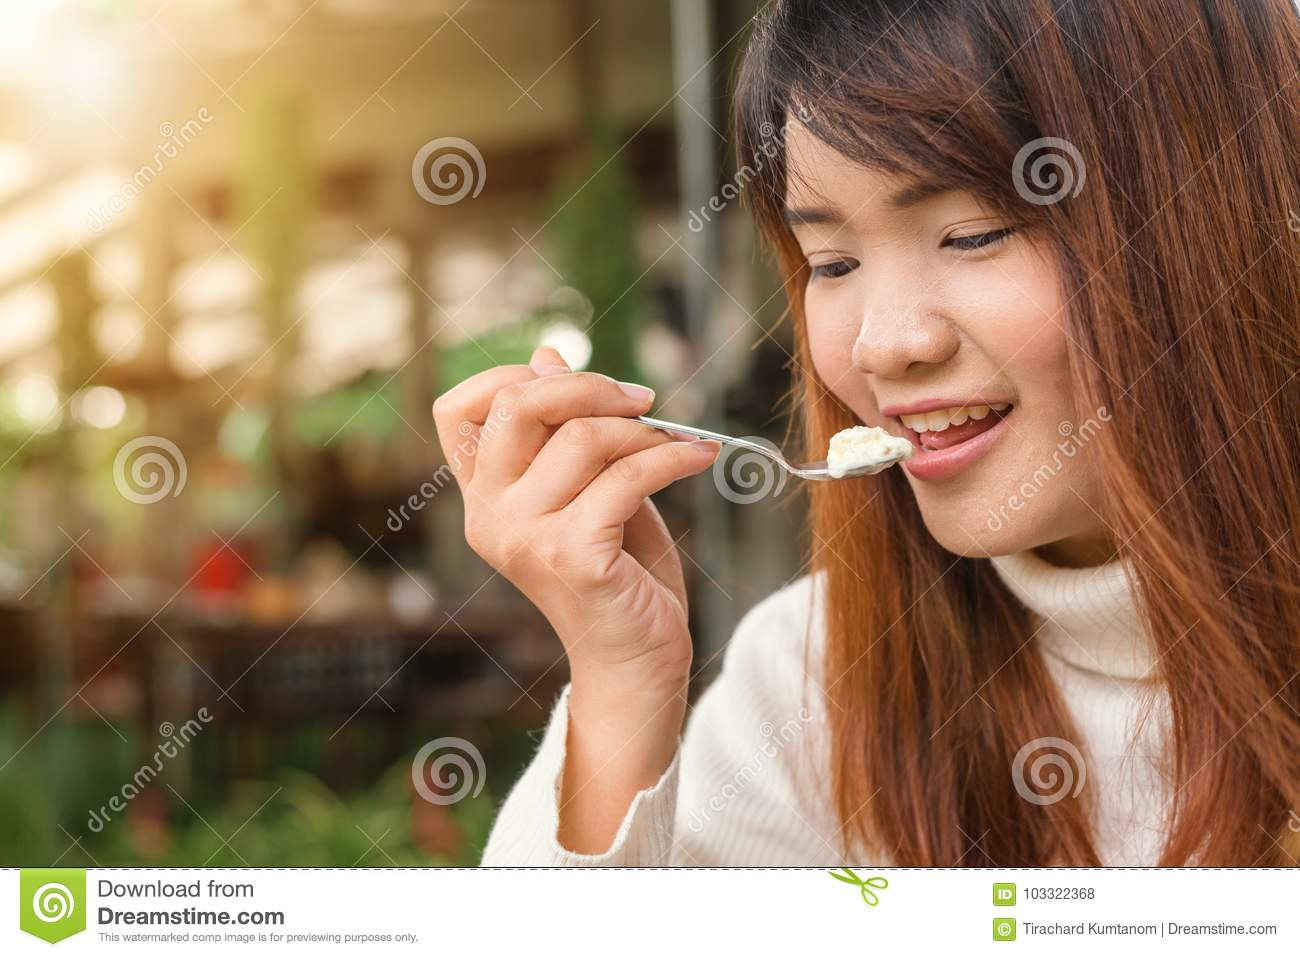 Attractive happy cute young asian woman sitting and eating dessert at outdoors cafe. Food, junk-food, culinary, baking and holiday